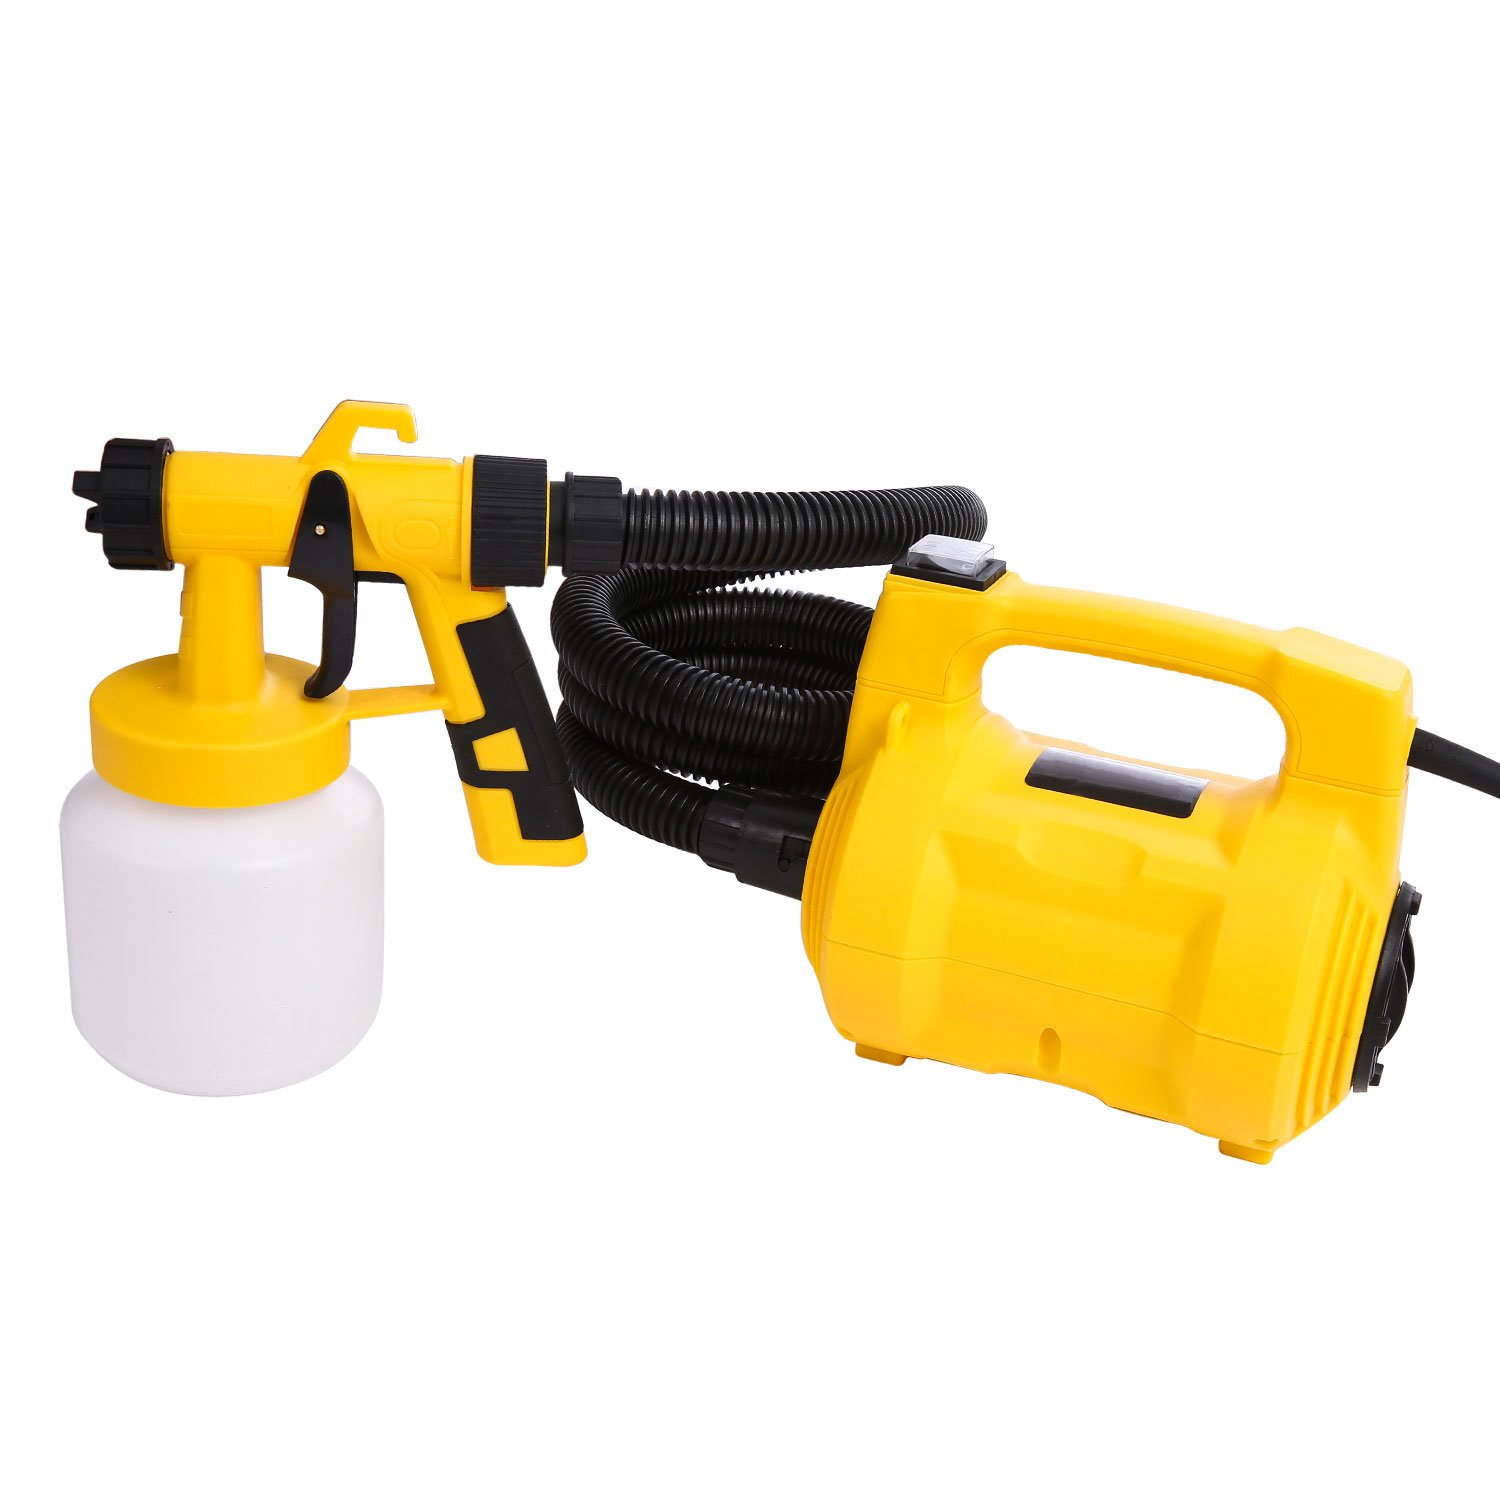 Oanon Electric HVLP Paint Sprayer Spray Gun with 3 Spray Patterns and Flow Control, 4-In-1 Painting Gun, Vacuum Cleaner, Inflatable, Pump for Compressed Bags (HVLP Paint Sprayer)